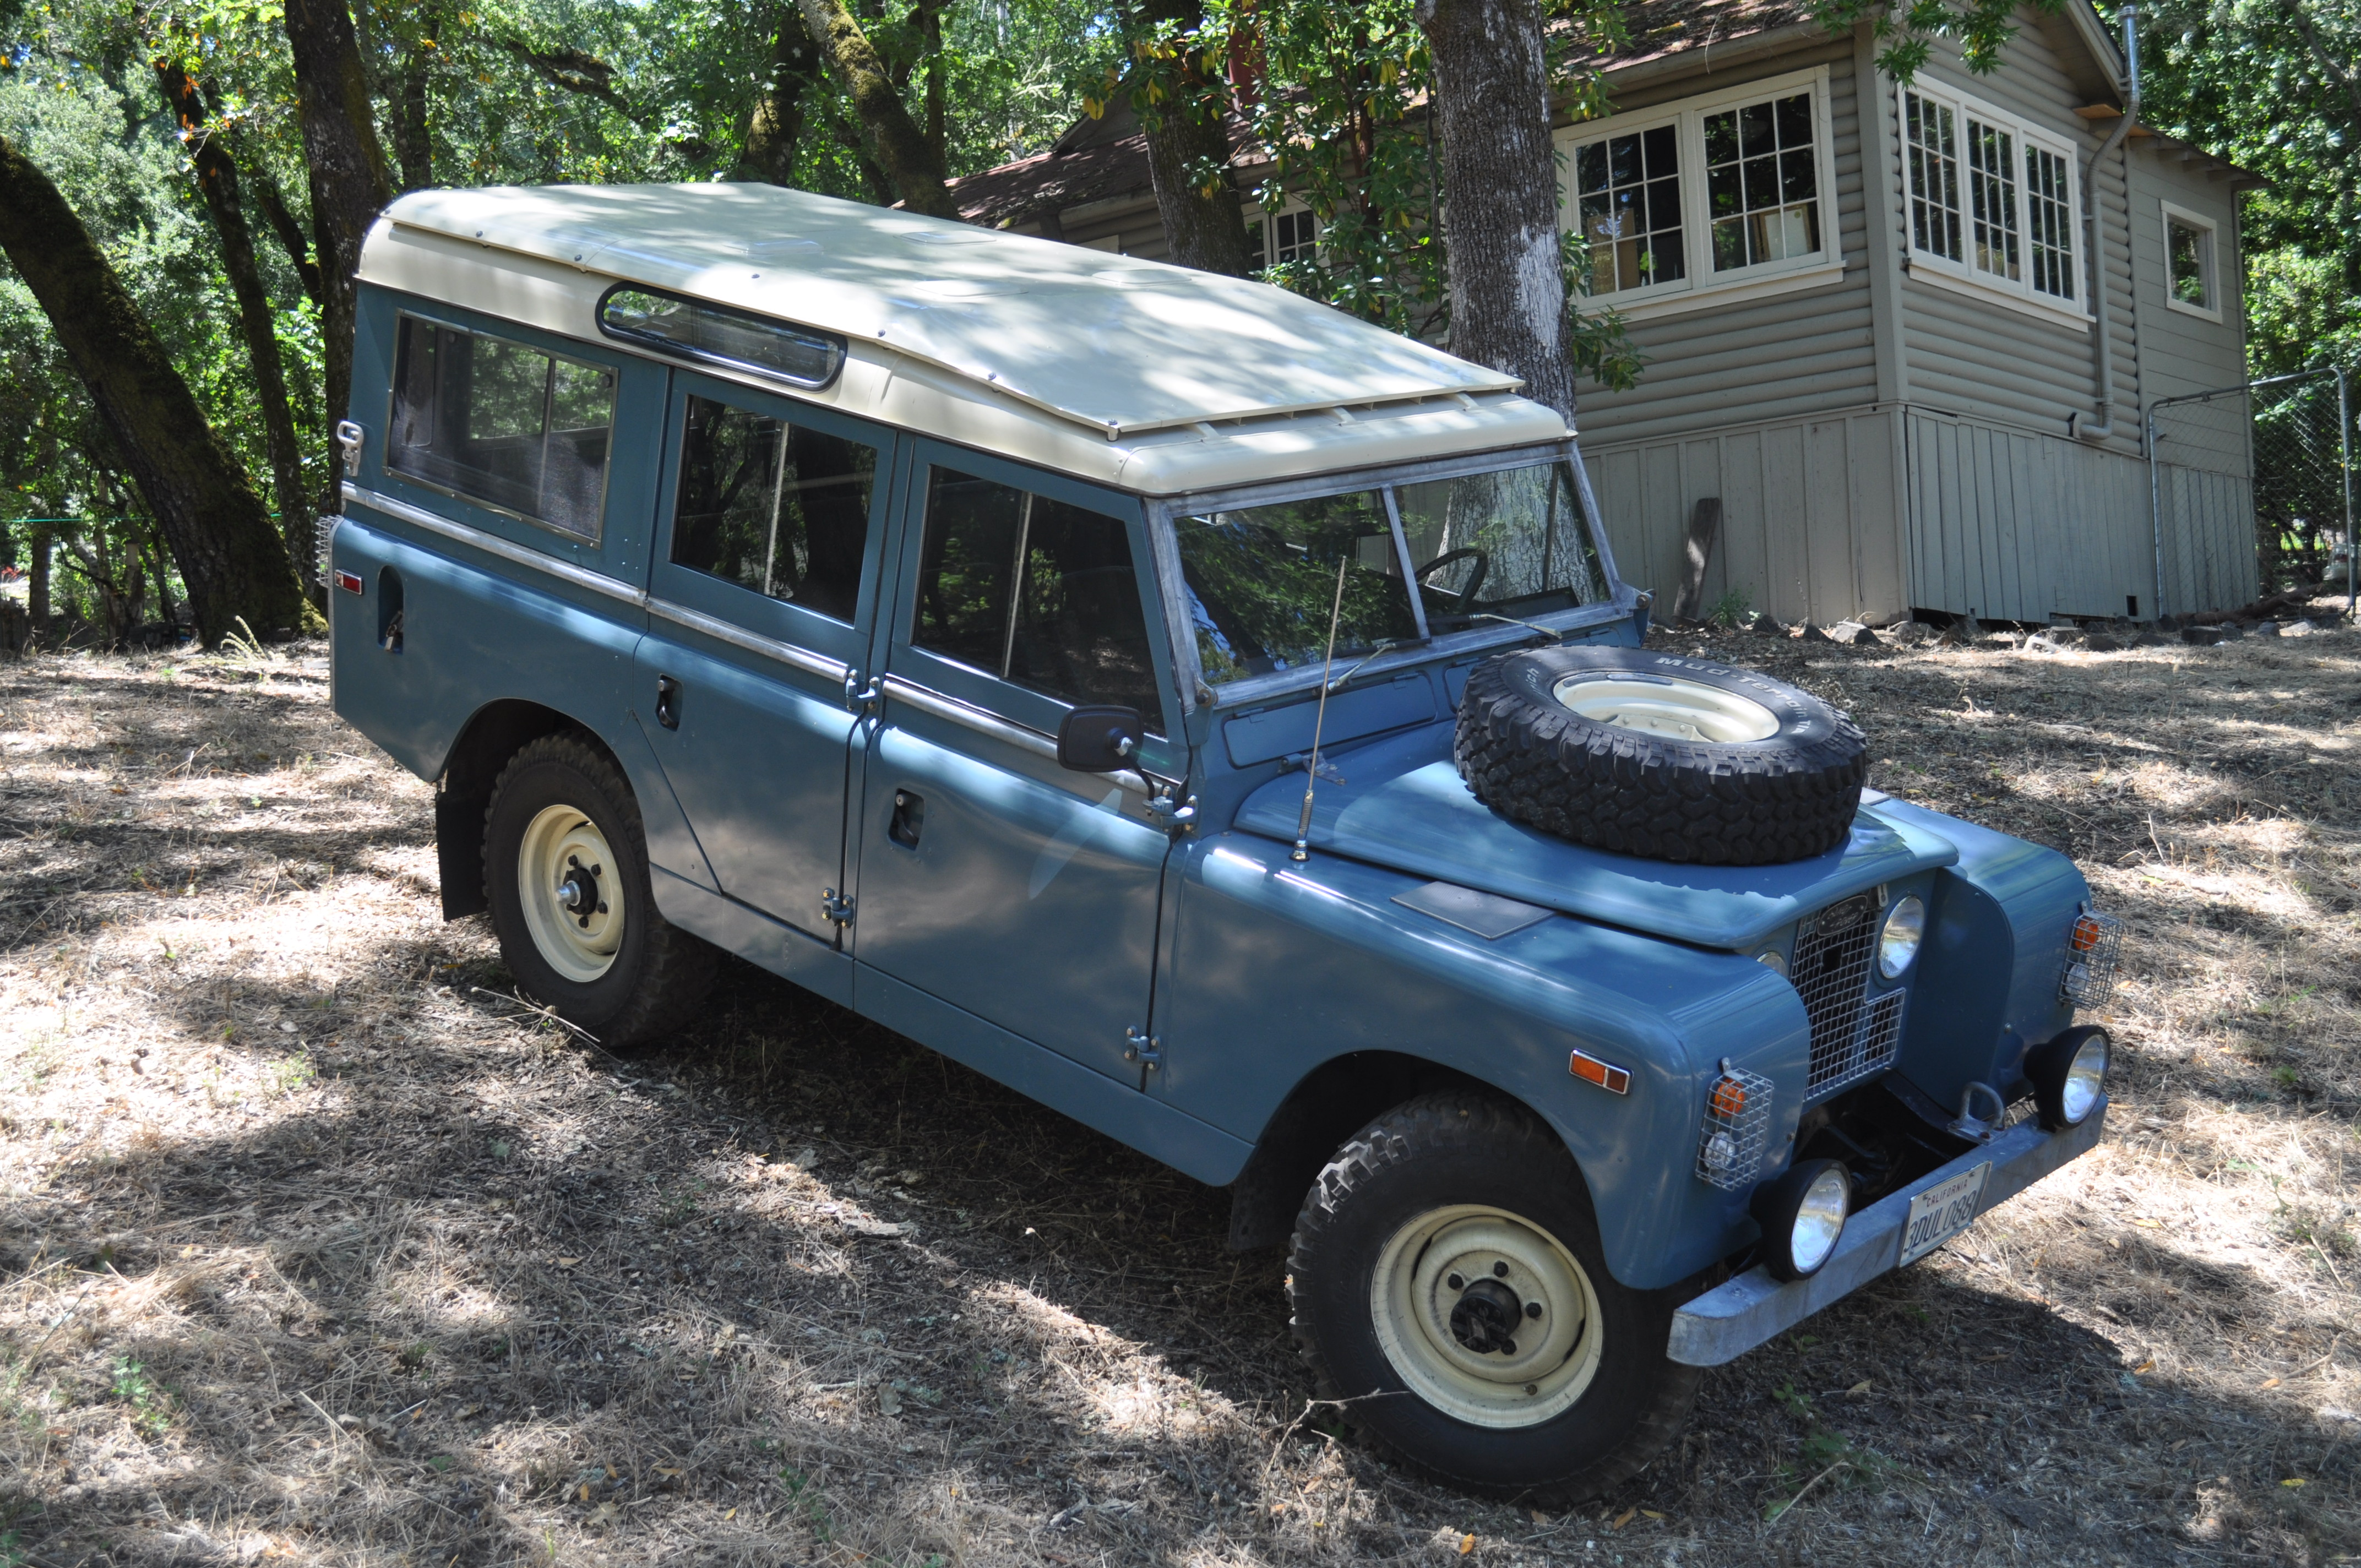 LAND ROVER SERIES II 3095px Image 12